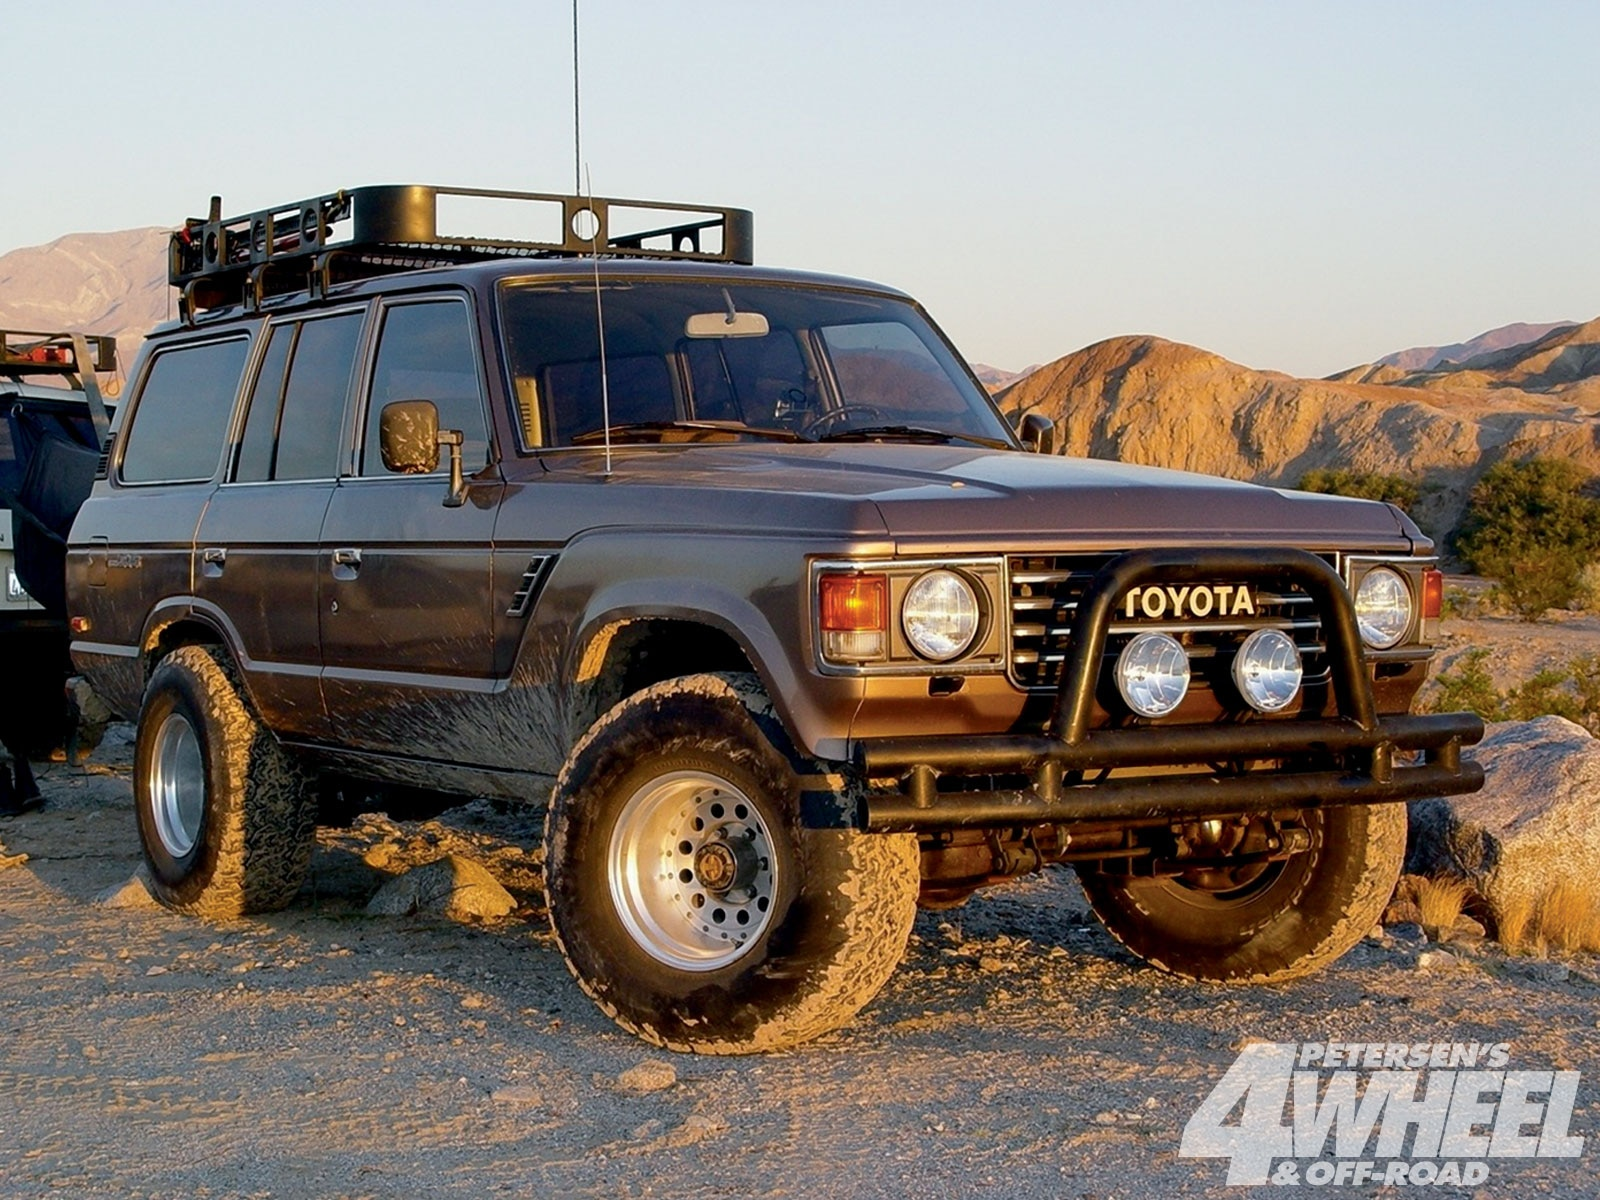 131 1004 01+buyers guide toyota land cruisers+FJ60